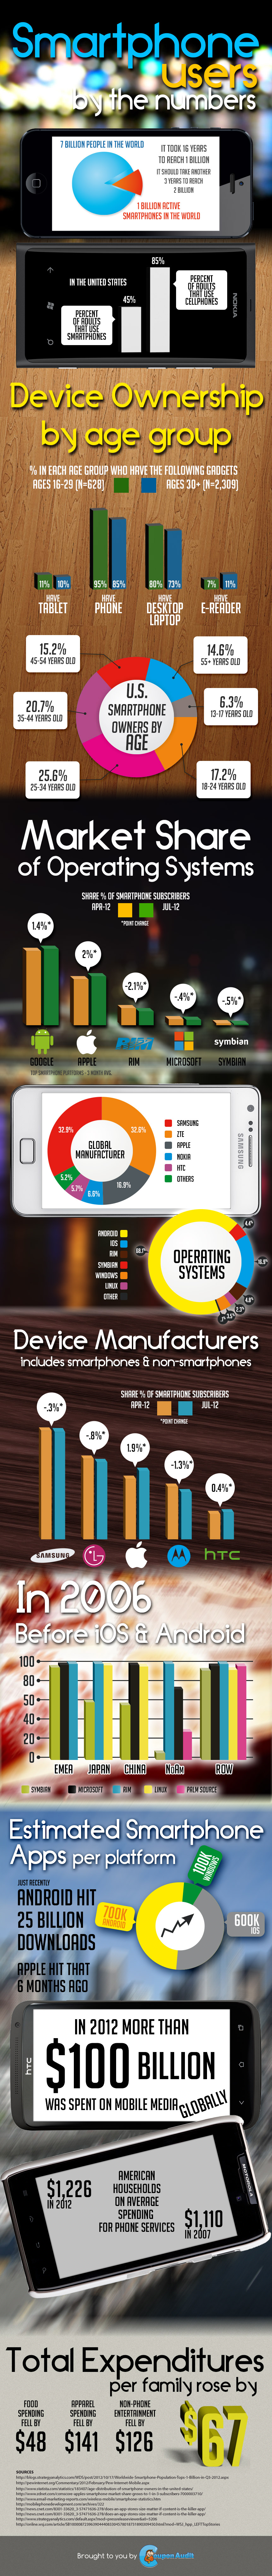 Popular Wallpaper Horse Ipad - smart-phone-users-by-the-numbers-infographic_50dd31f0a1bb3  HD_939734.jpg